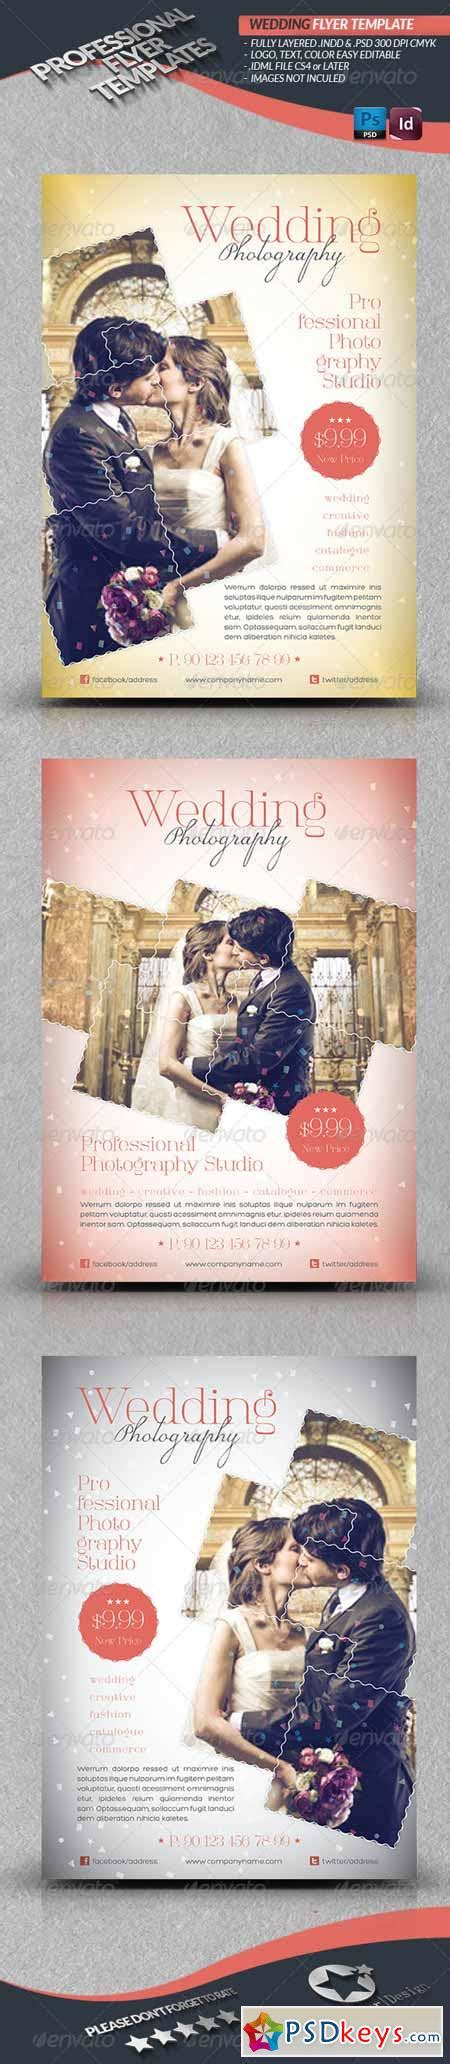 wedding photography flyer template 4291621 187 free download